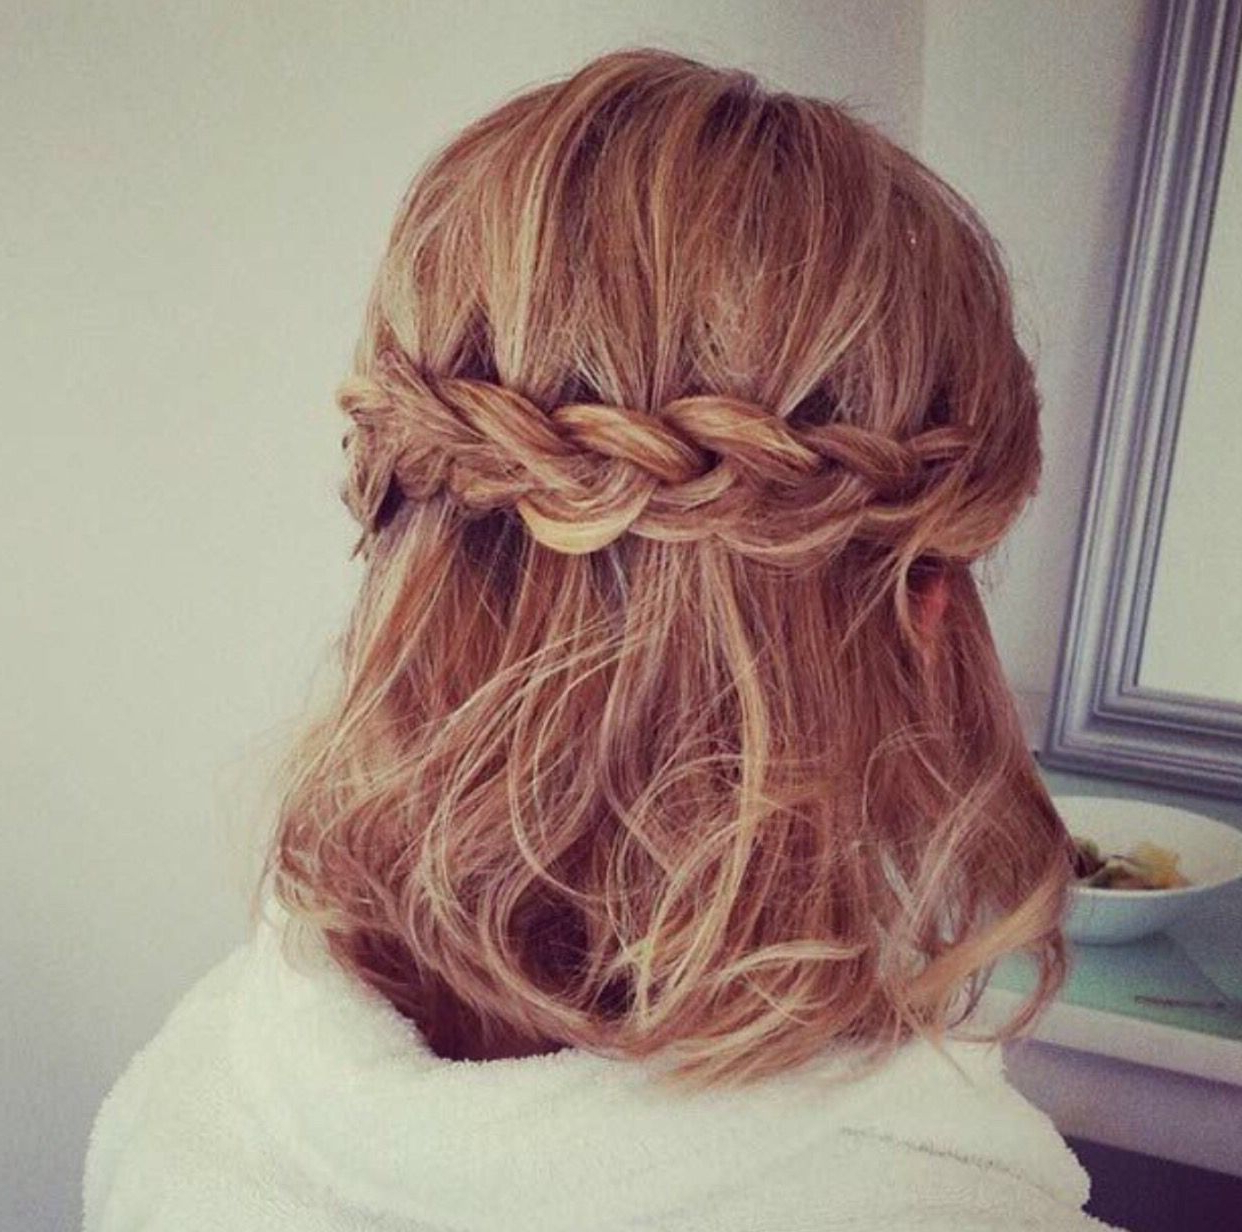 Piny On Hair (View 12 of 25)